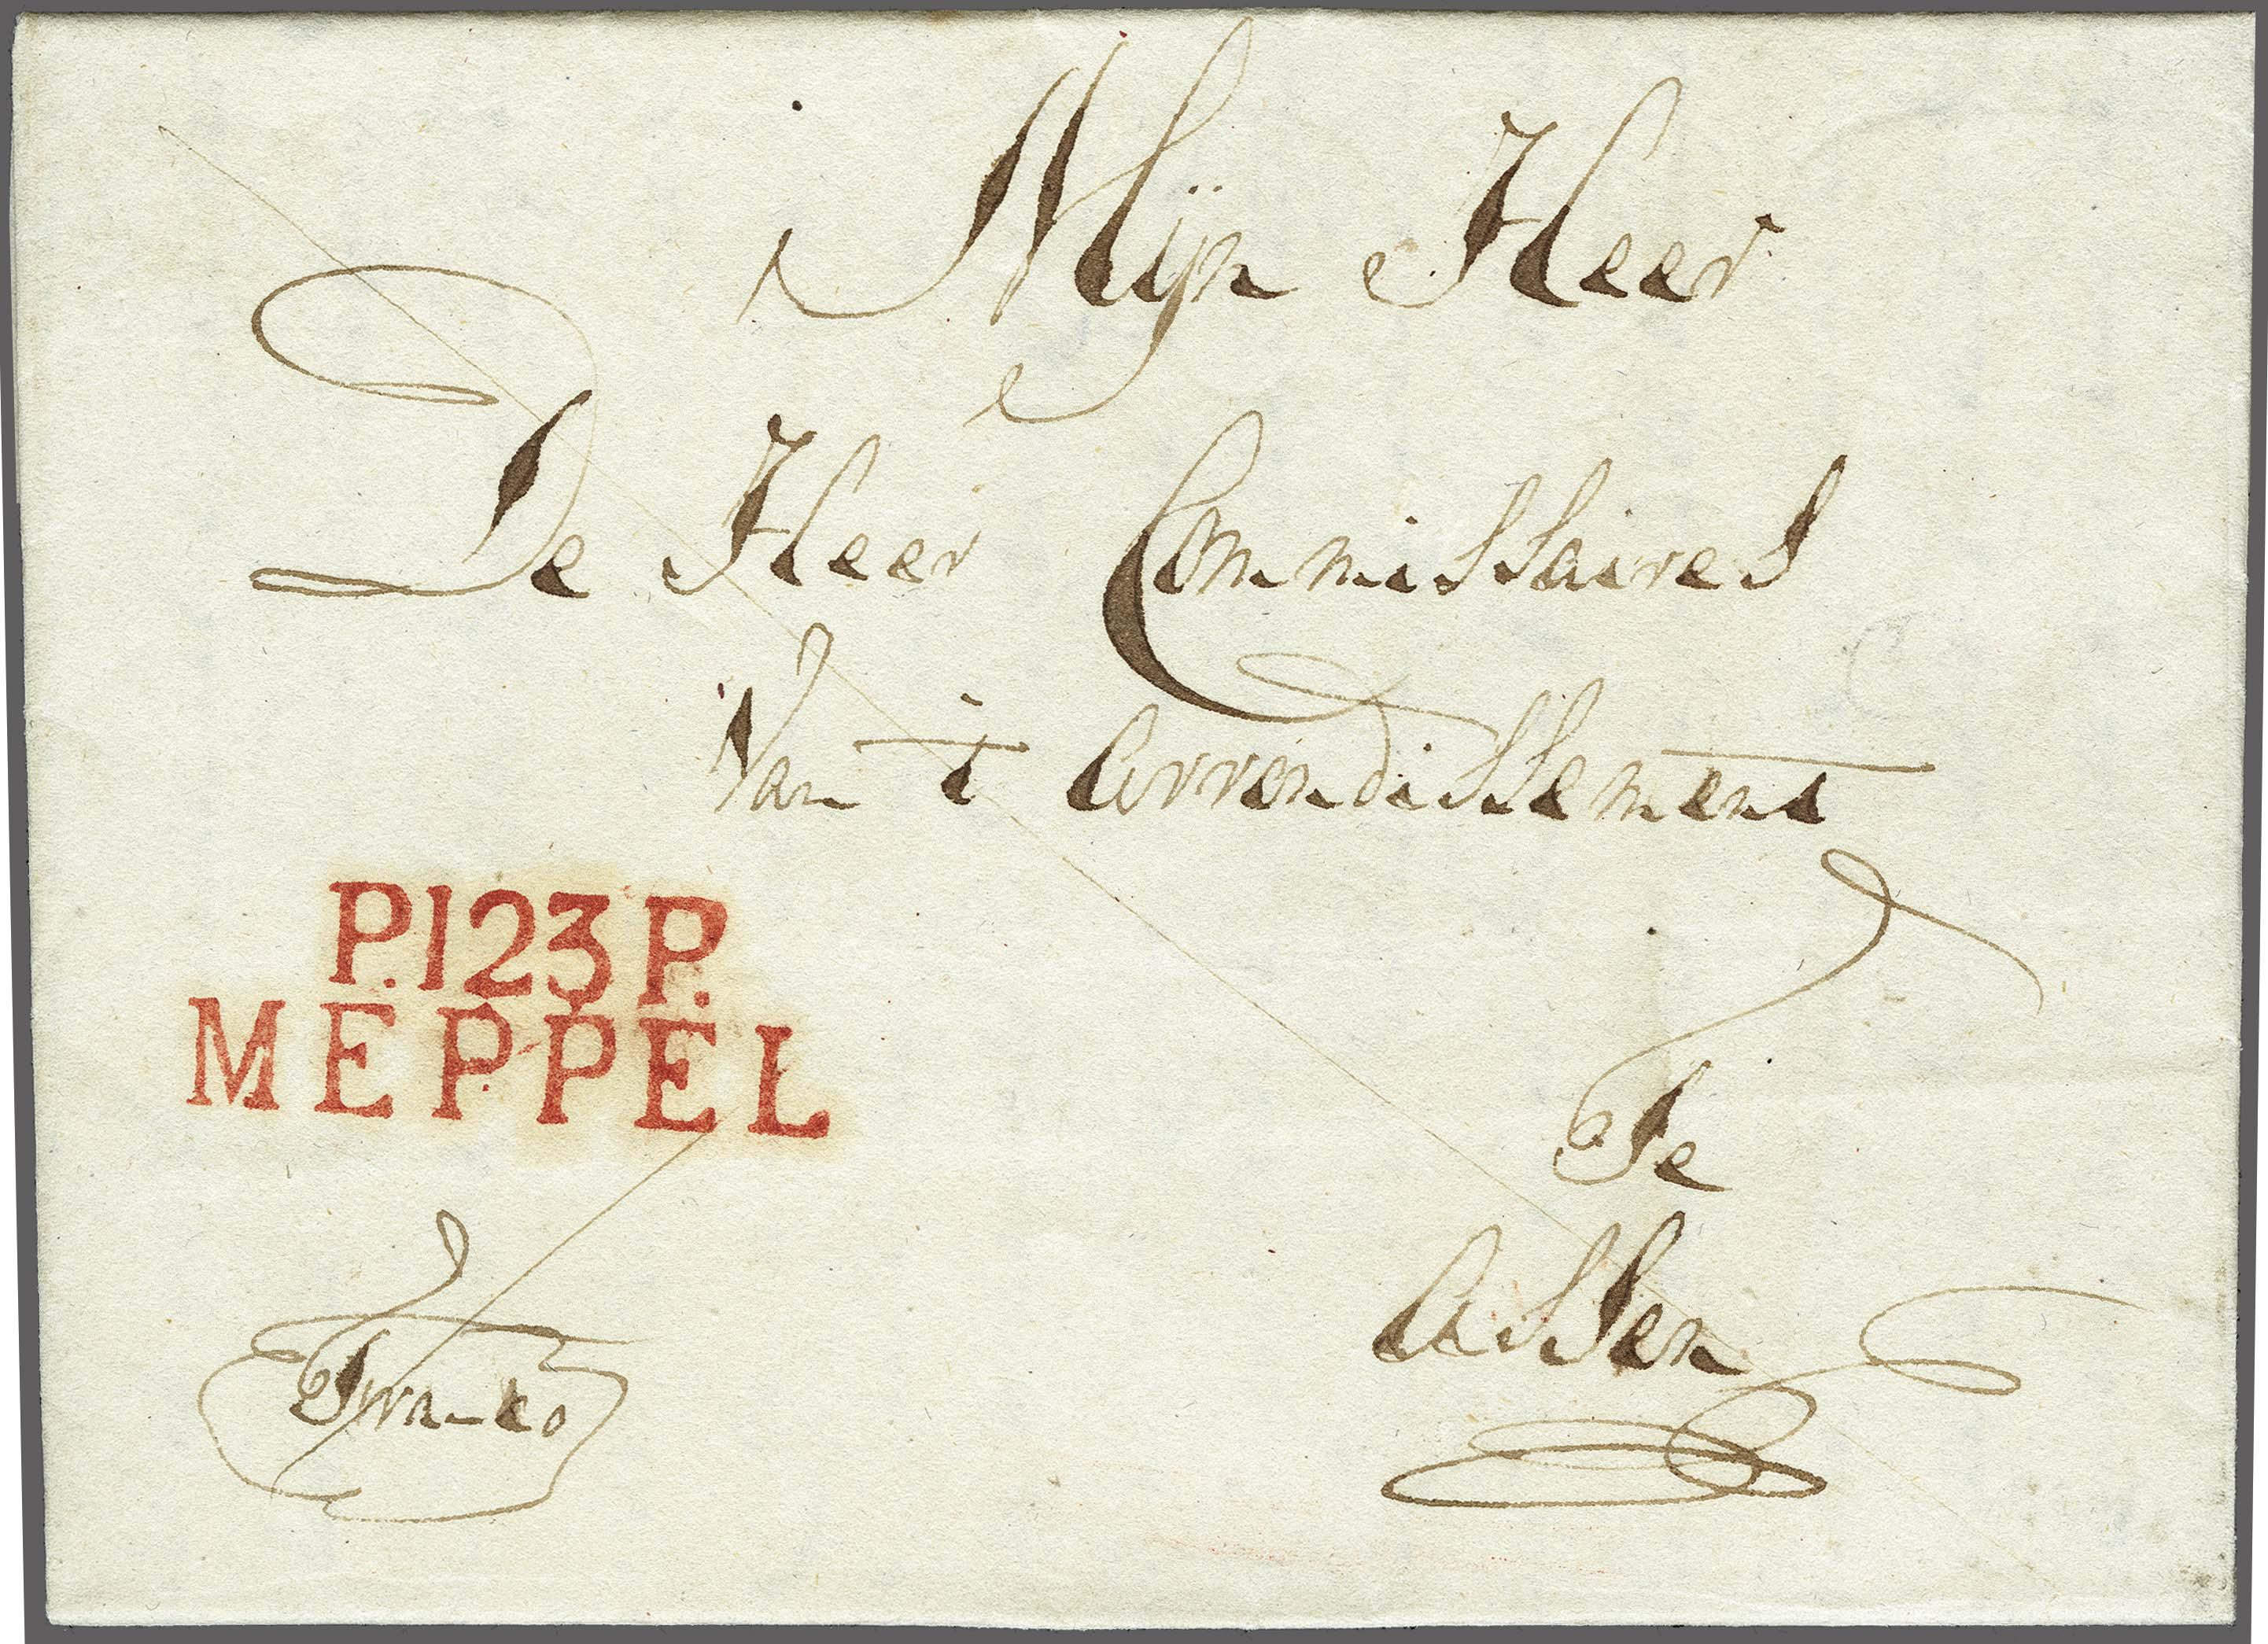 Lot 2357 - Netherlands and former colonies Netherlands -  Corinphila Veilingen Auction 250-253 - Day 3 - Netherlands and former colonies - Single lots & Picture postcards